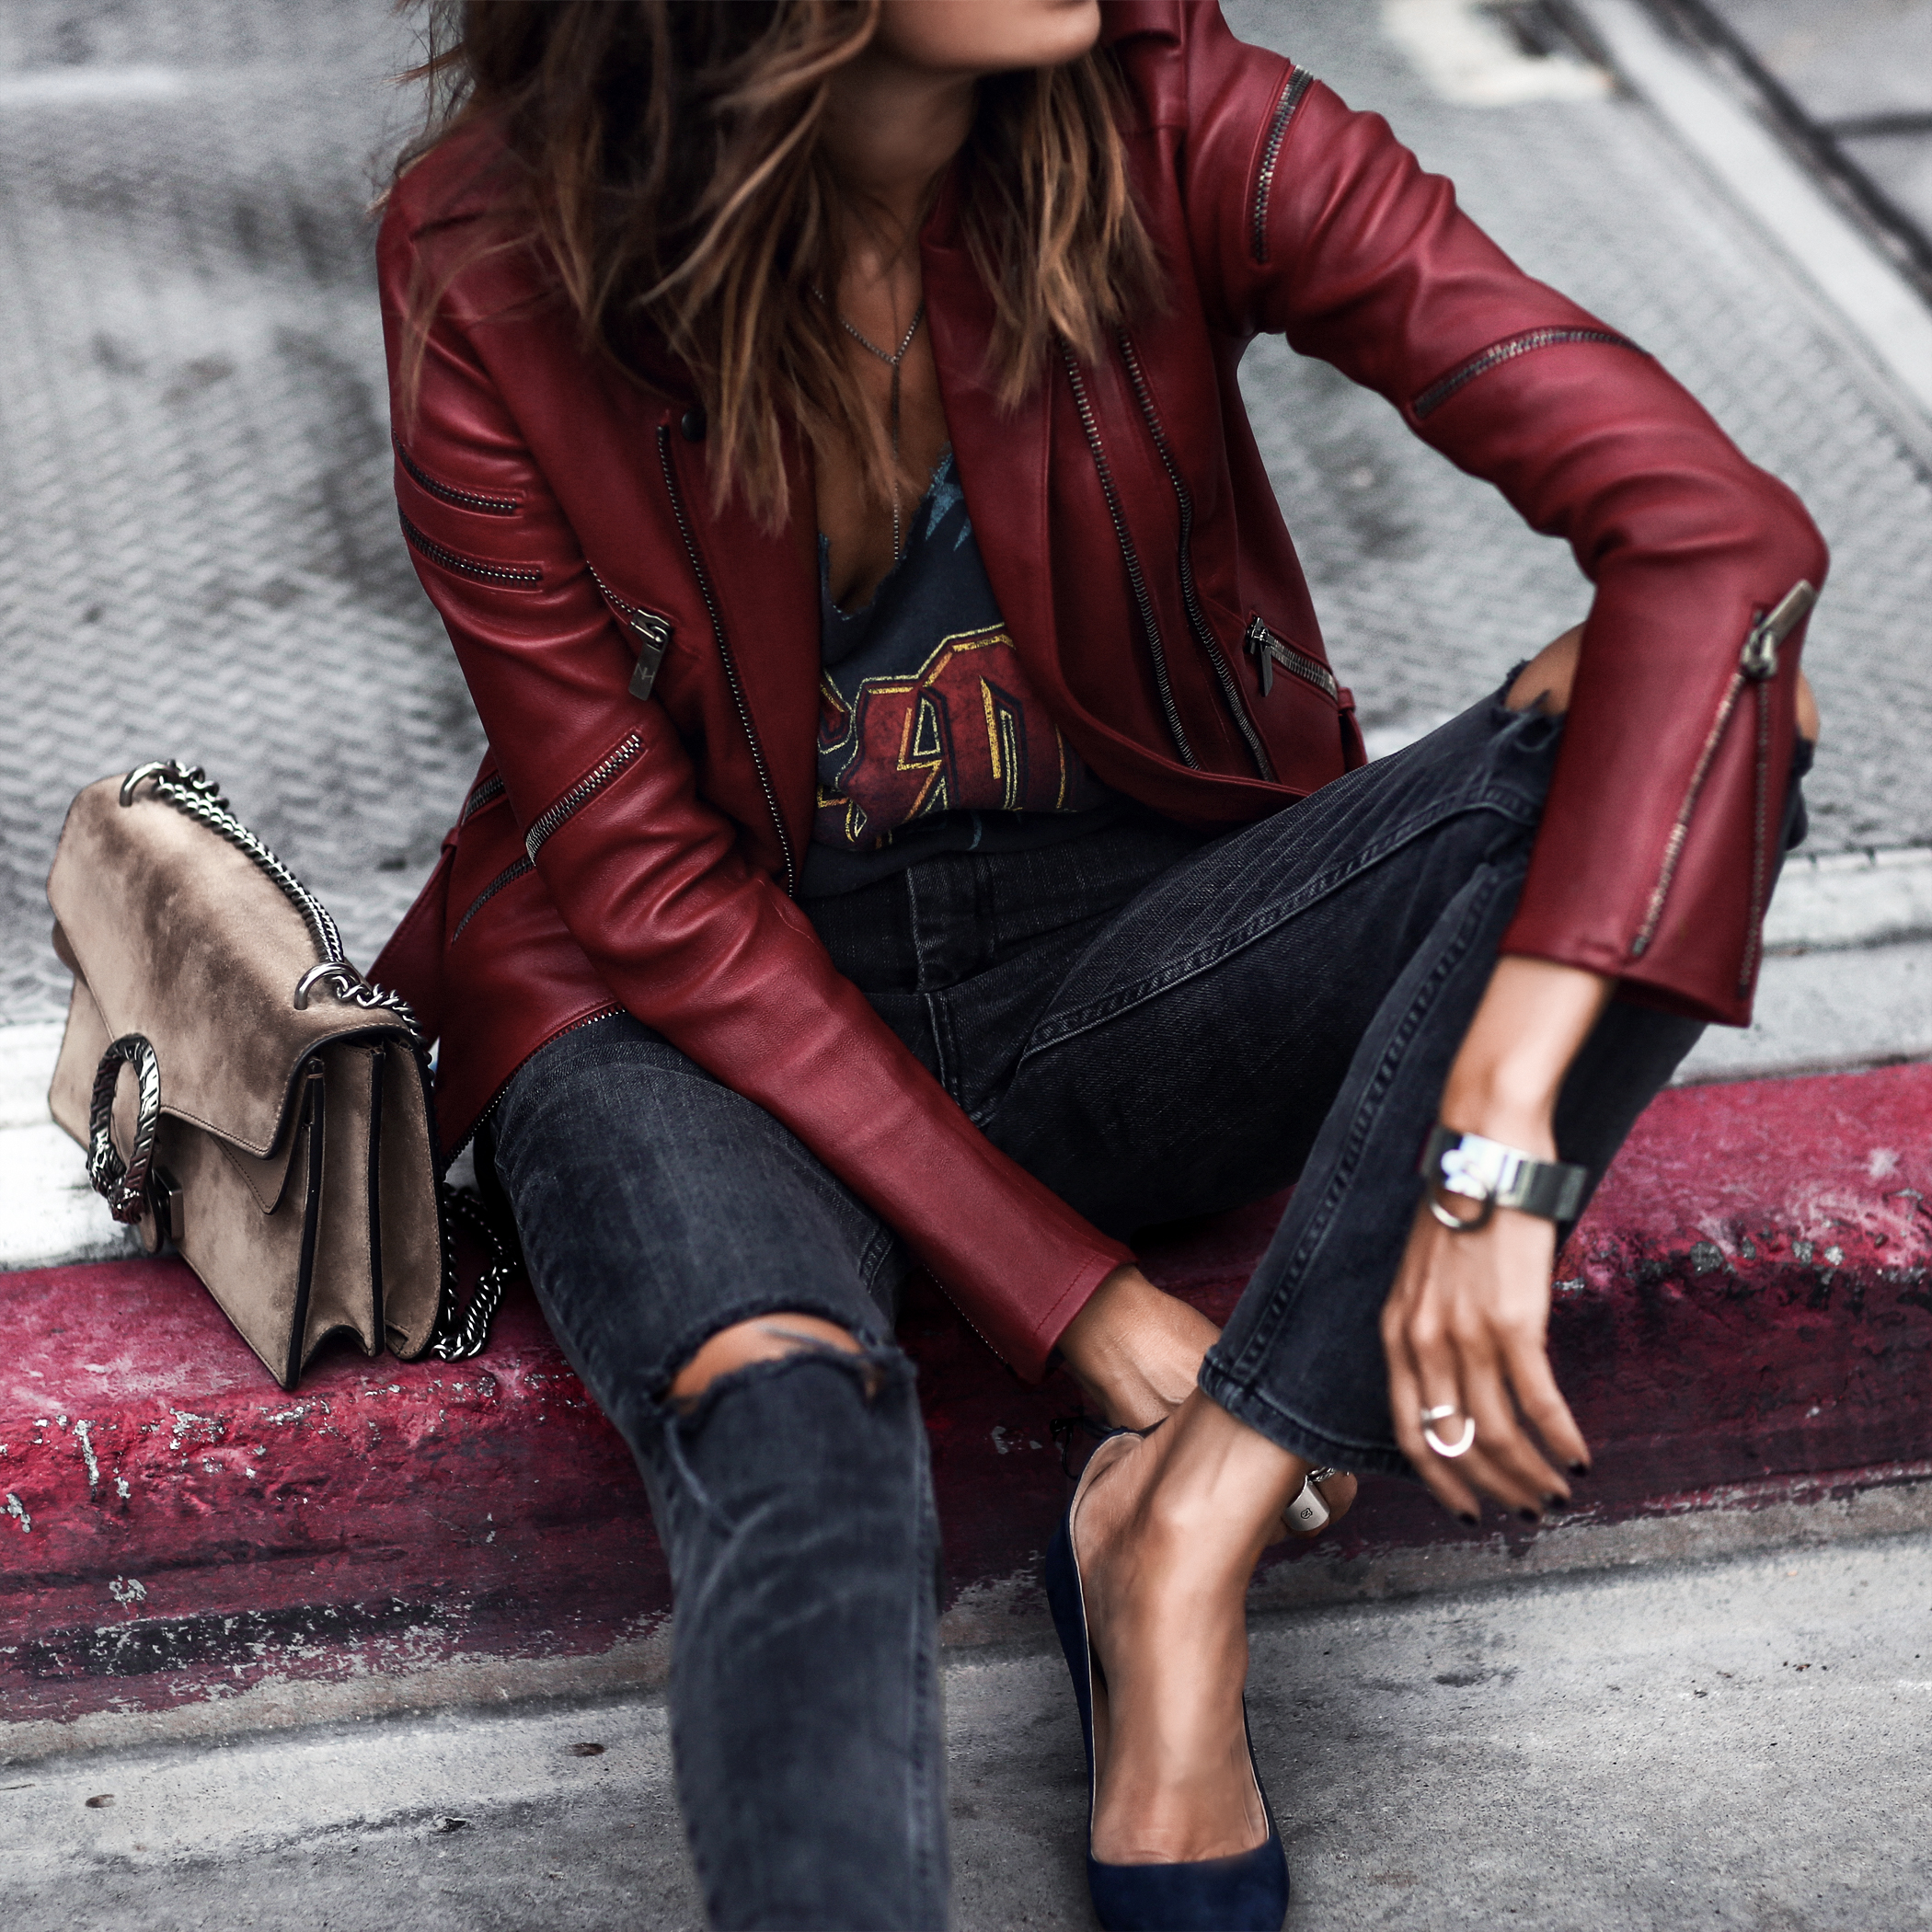 graphic tee, red leather jacket, ripped skinny jeans